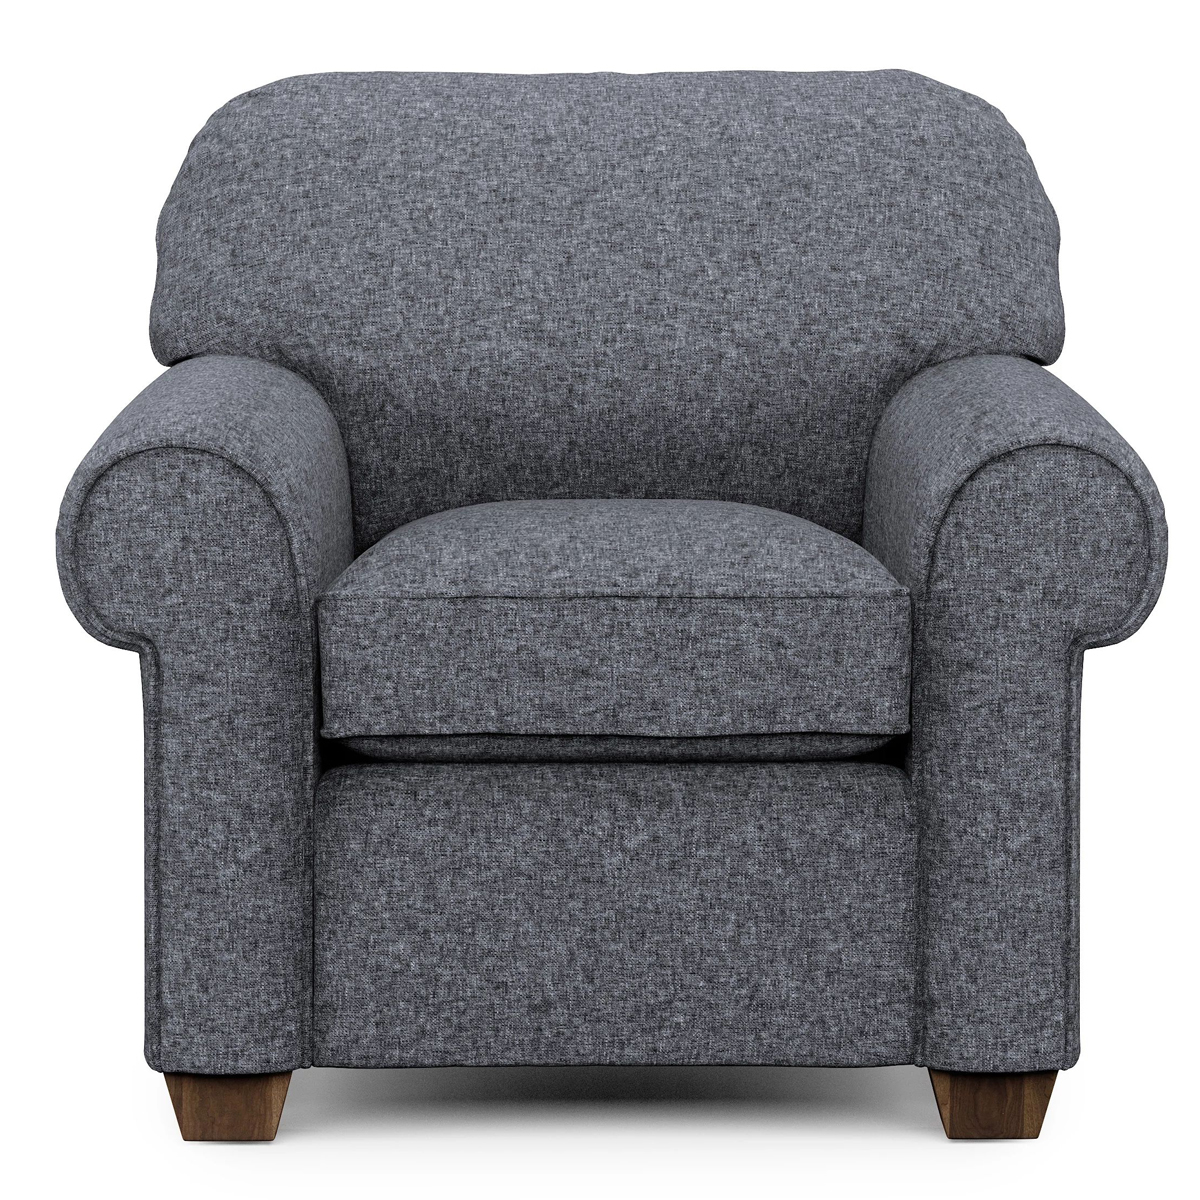 Picture of THORNTON QS CHAIR